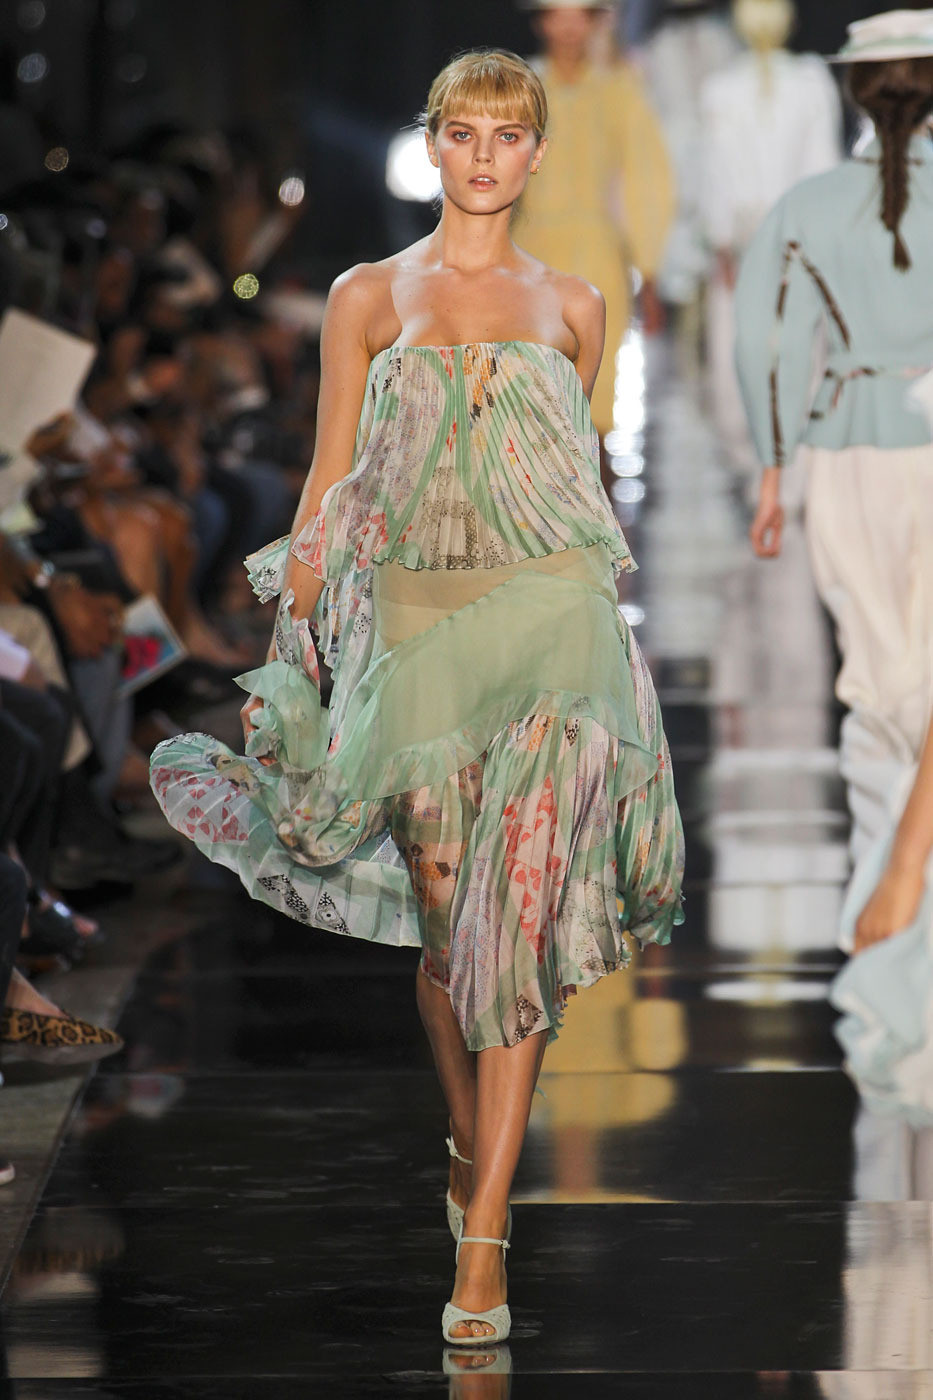 John Galliano Spring 2012 Rr 3 kc Ex Re Vdx